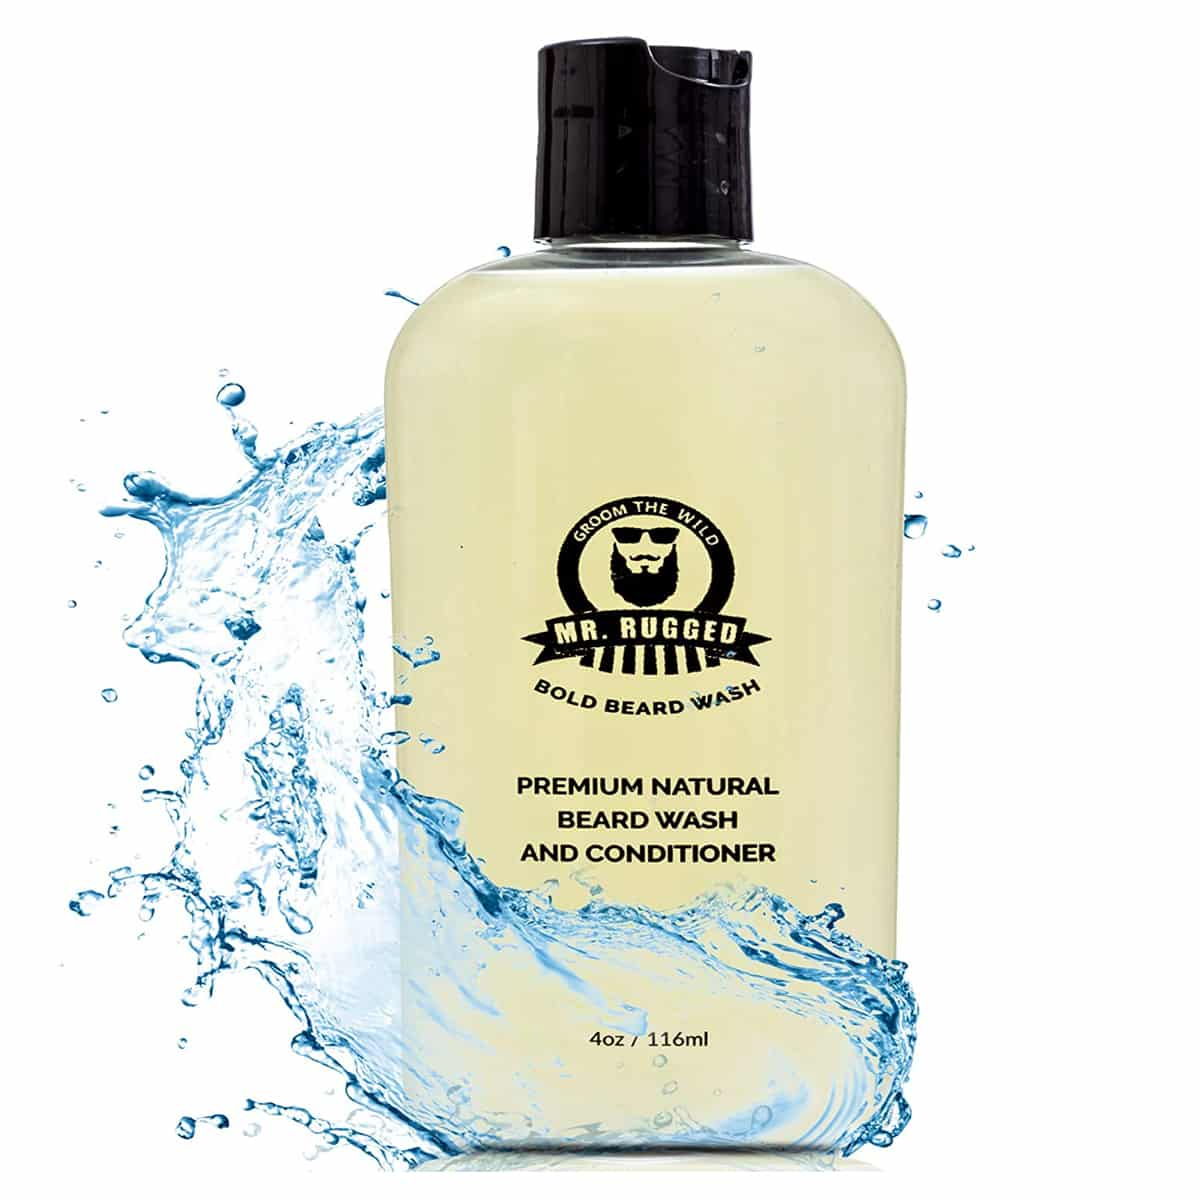 Mr. Rugged Beard Wash and Conditioner for Men